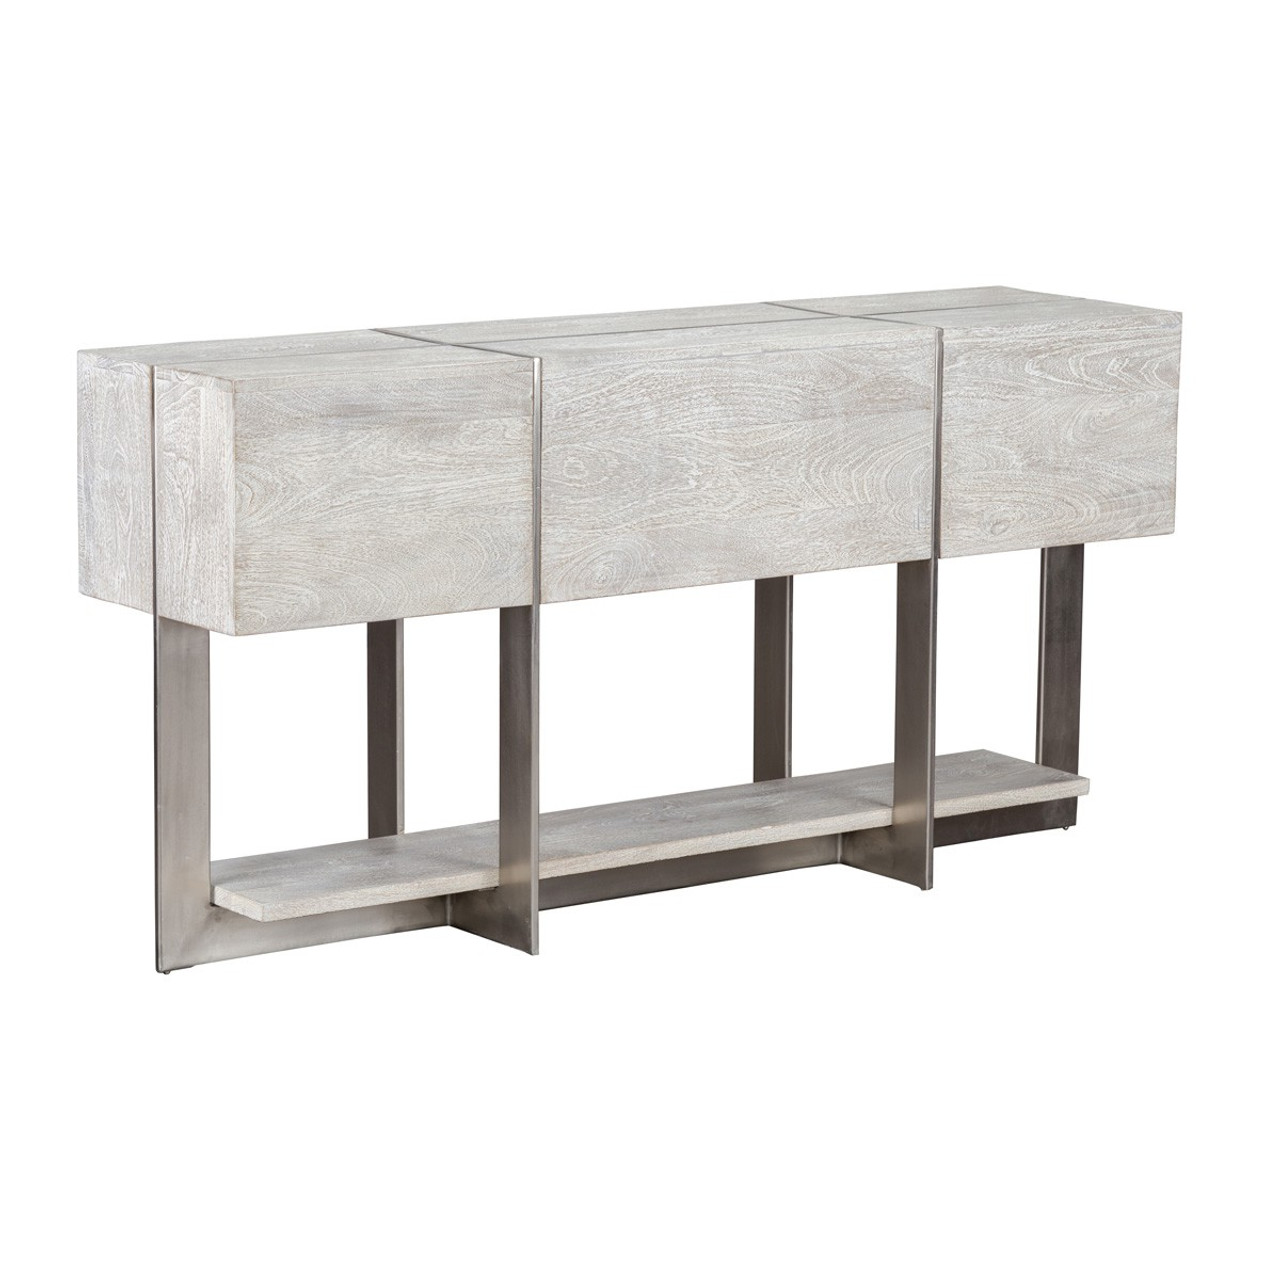 Uptown Whitewashed Solid Wood Console Table. Clifton Console Table